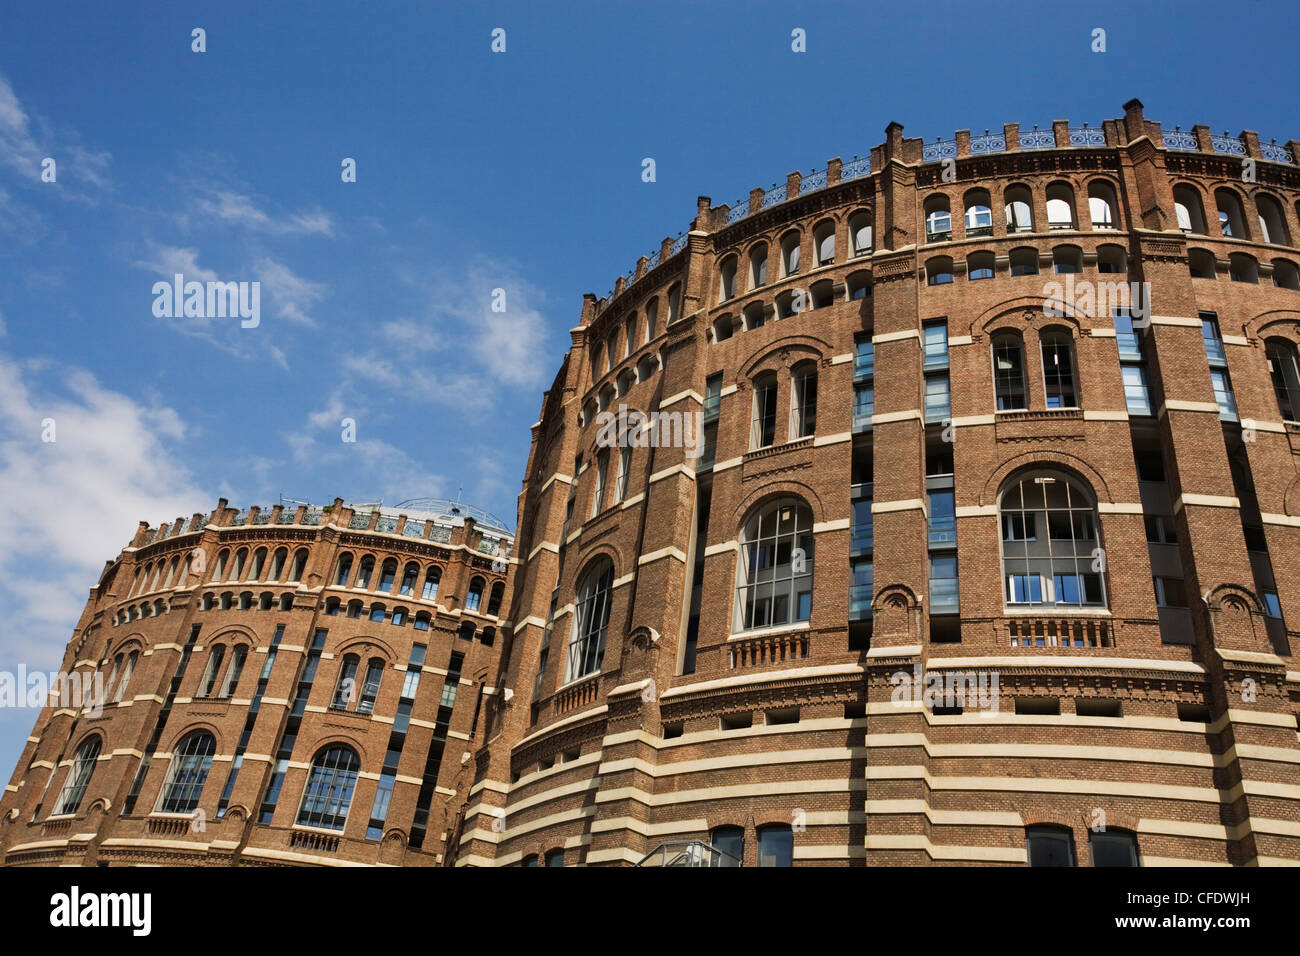 Gasometers converted into an urban city, Gasometer City, Simmering, Vienna, Austria, Europe - Stock Image